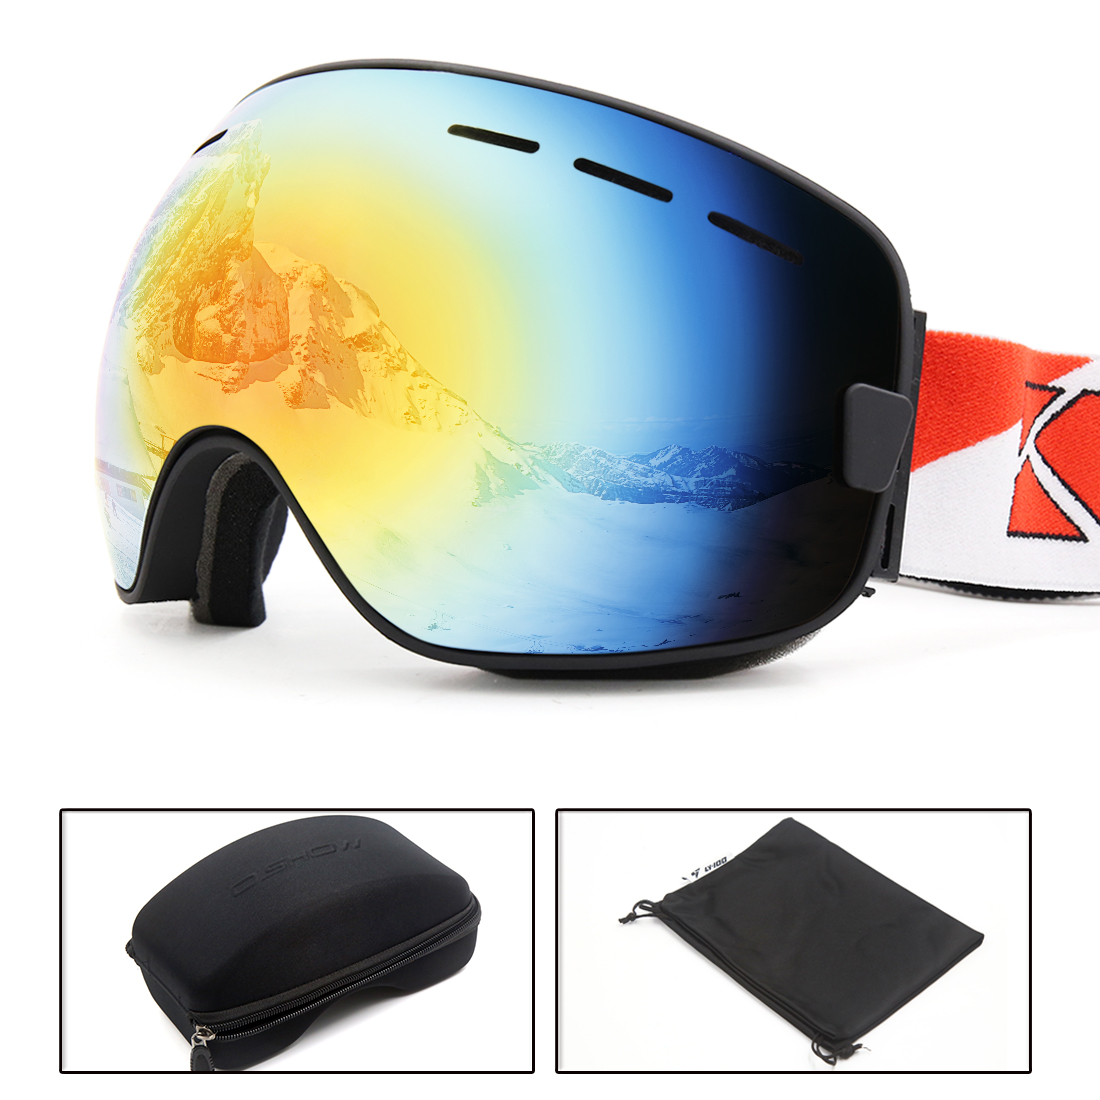 Ski Snowboard Goggles Anti-fog UV400 Protection Black Mirror Lens with Case by